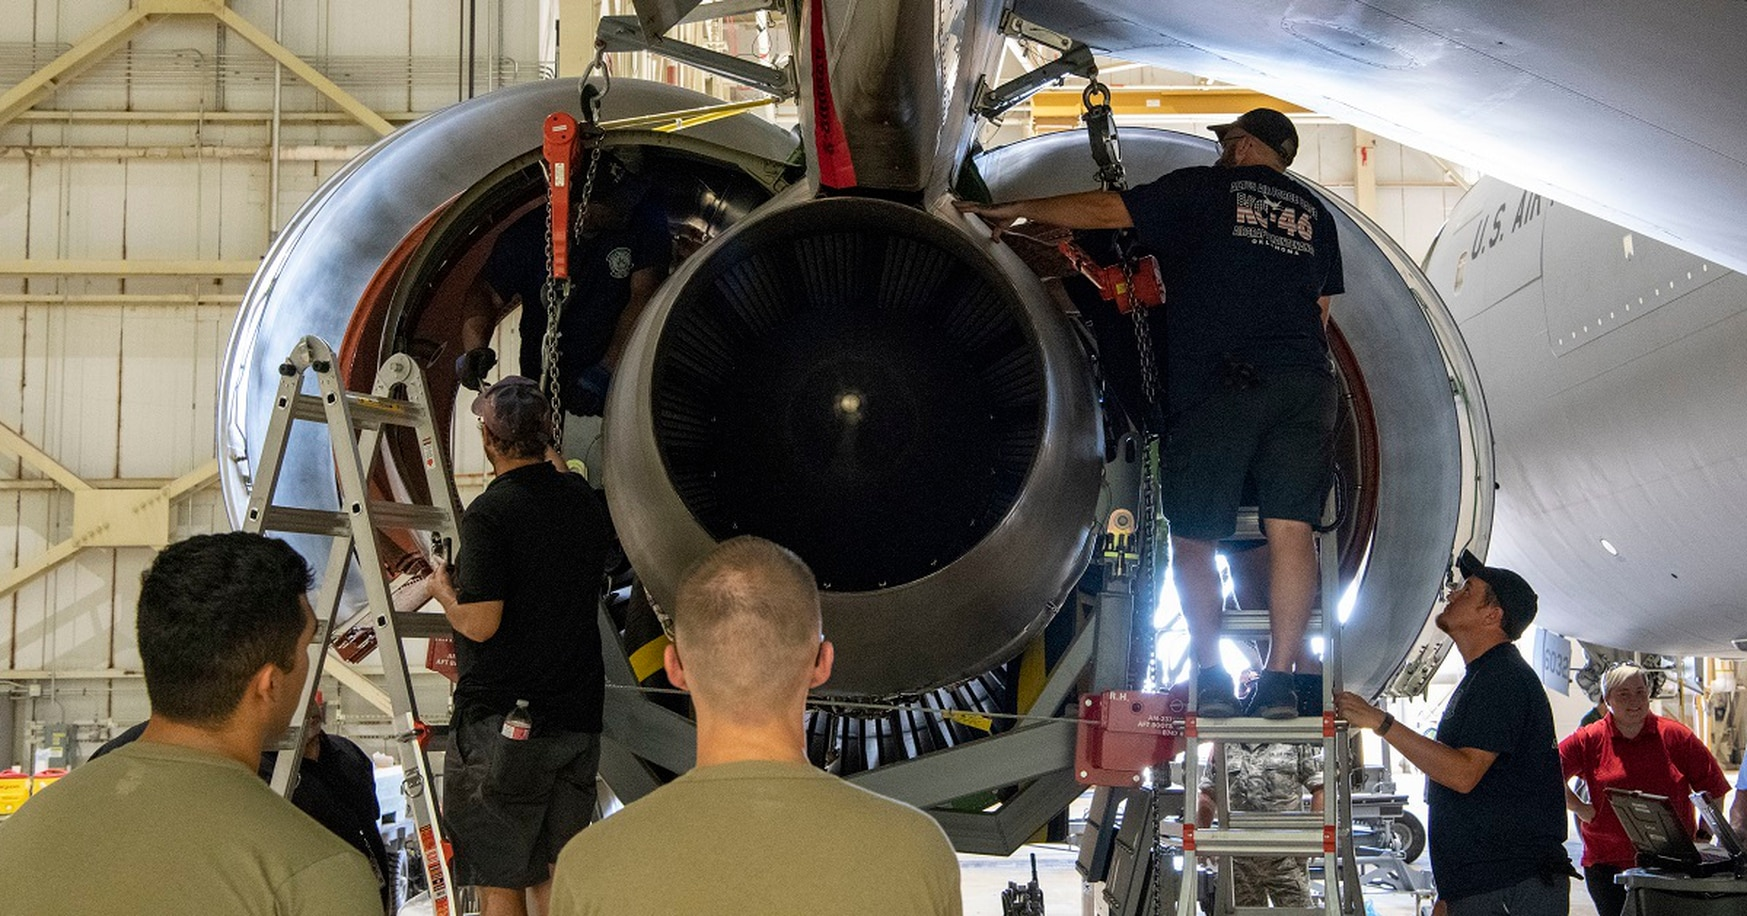 The 97th Air Mobility Wing's KC-46A maintenance team removes an engine from a Pegasus for the first time June 26 at Altus Air Force Base, Okla. Ultimately, the solution to low mission-capable rates in the Air Force is the modernization of the fleet. (Airman 1st Class Breanna Klemm/Air Force)